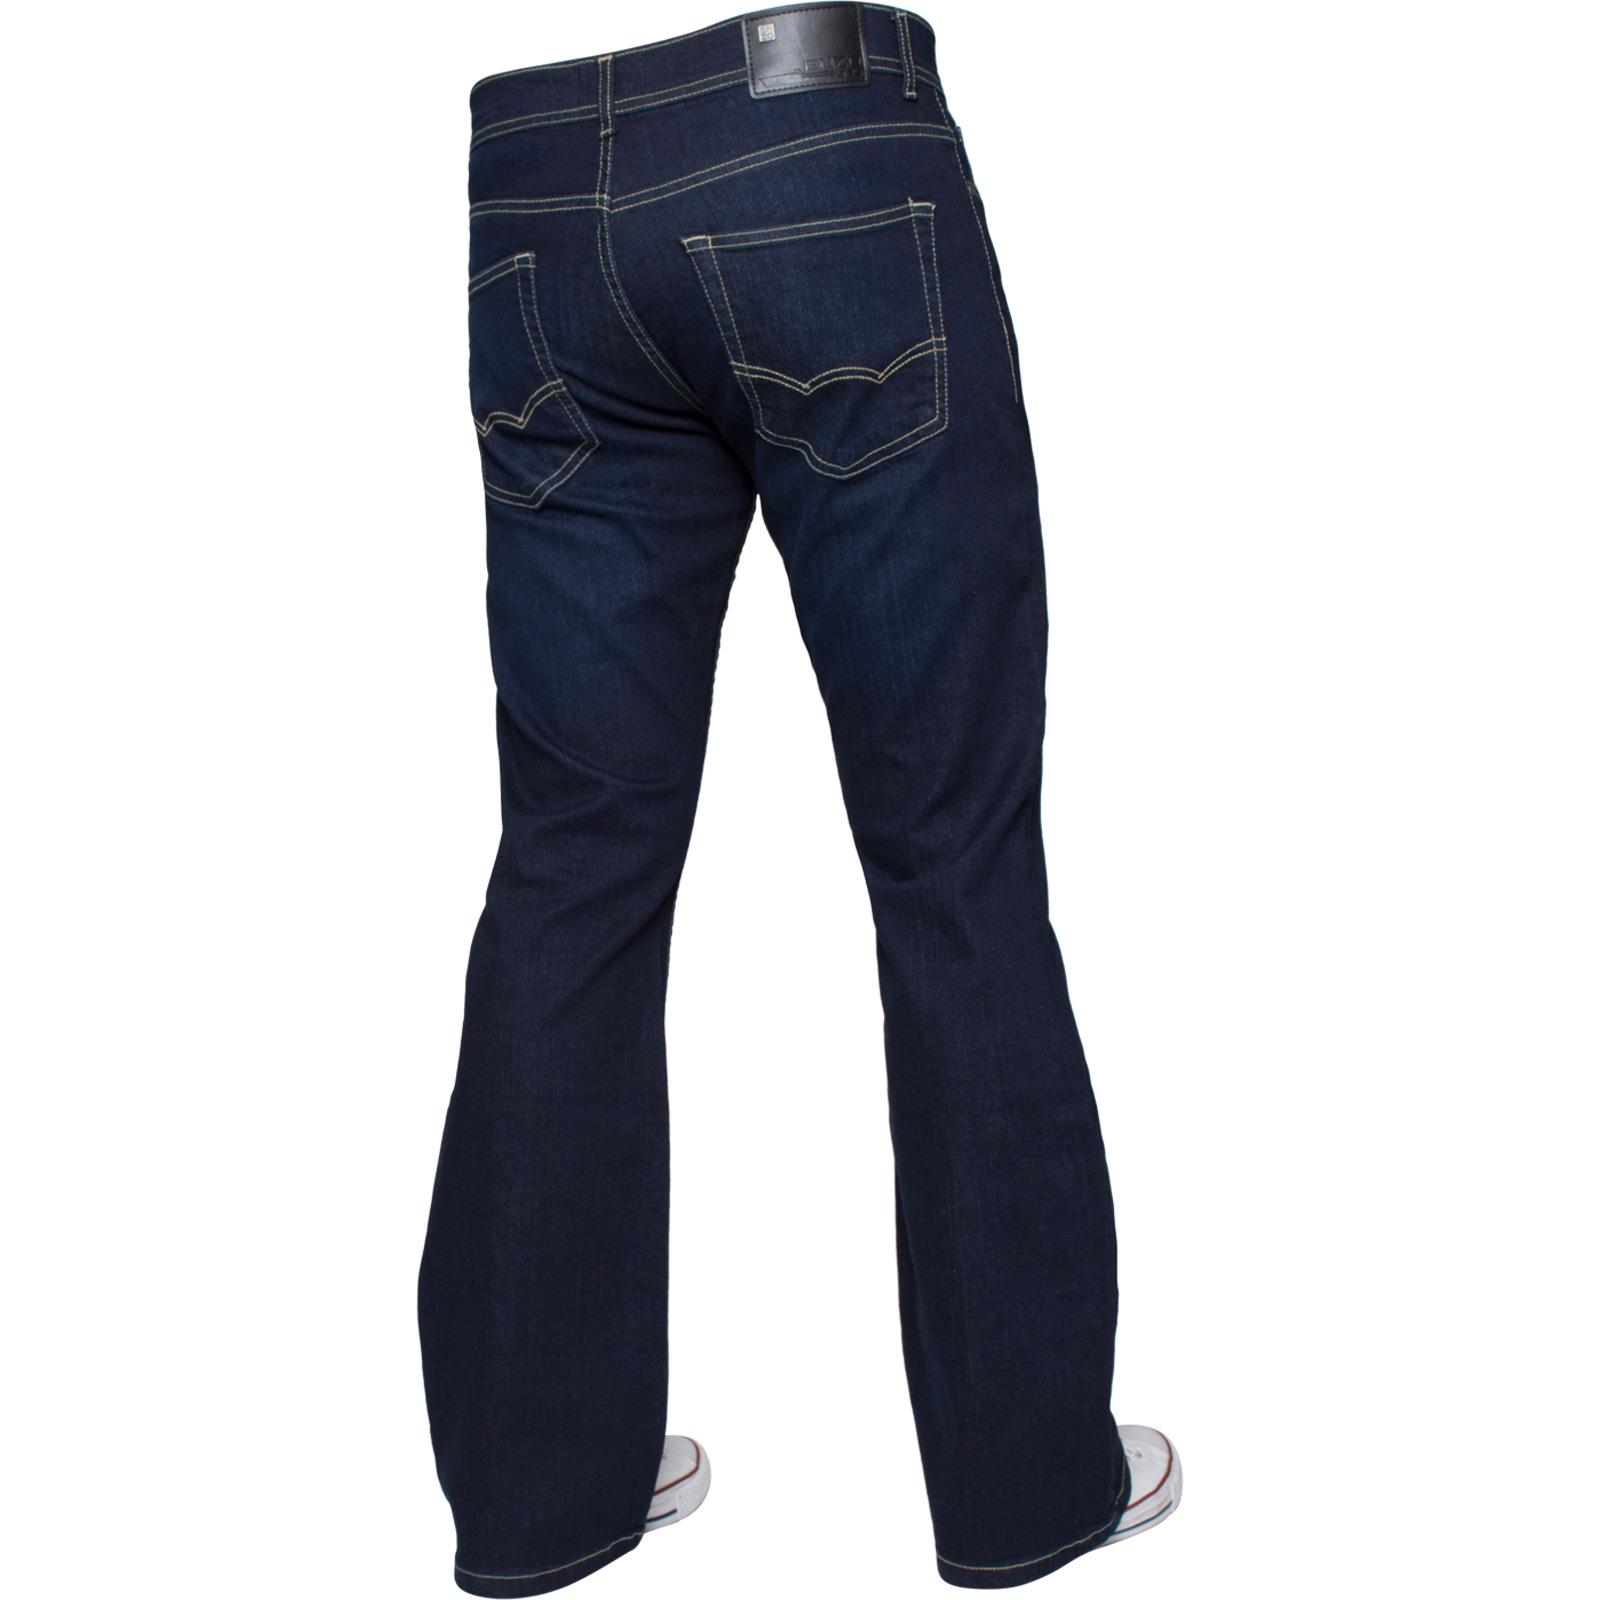 Mens-Straight-Bootcut-Jeans-Stretch-Denim-Pants-Regular-Fit-Big-Tall-All-Waists thumbnail 48